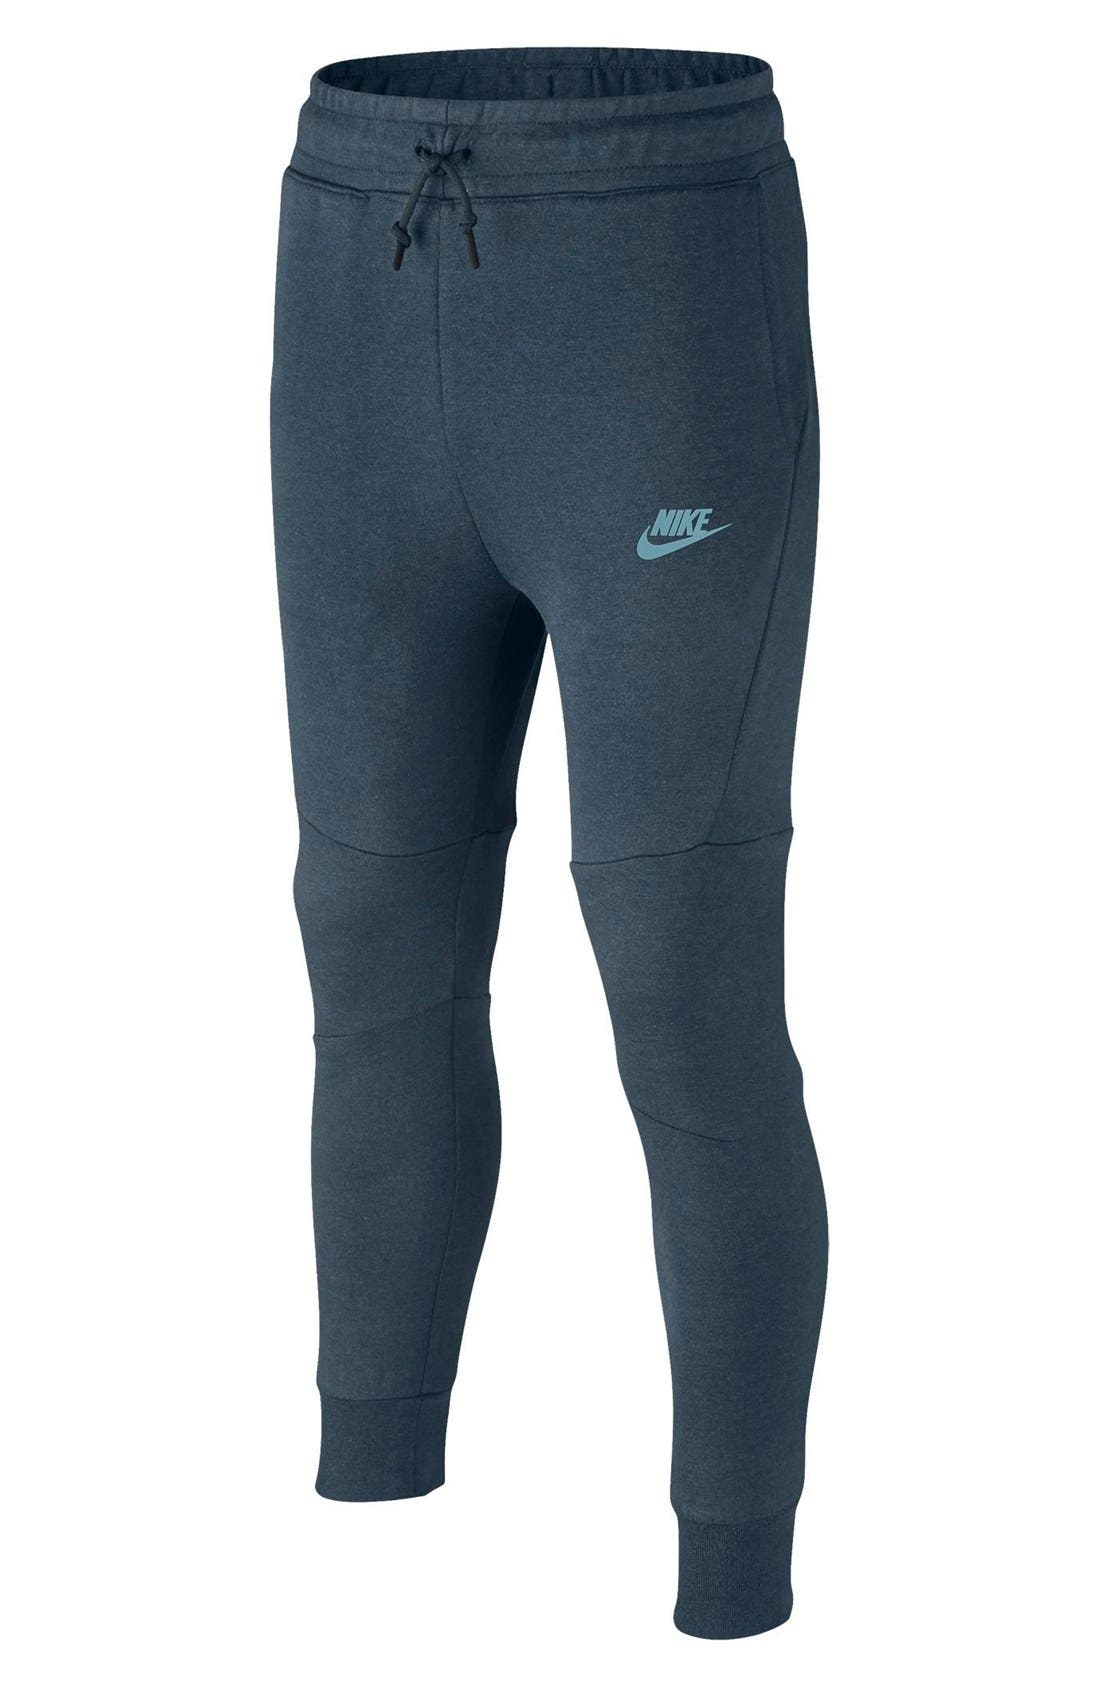 Shop Old Navy for a wide variety of classic, comfortable fleece pants for the whole family. Fleece Pants Old Navy Collection. From tight-fitting pants for women to cargo pants and sleep pants for boys, our collection is suited for multiple uses.